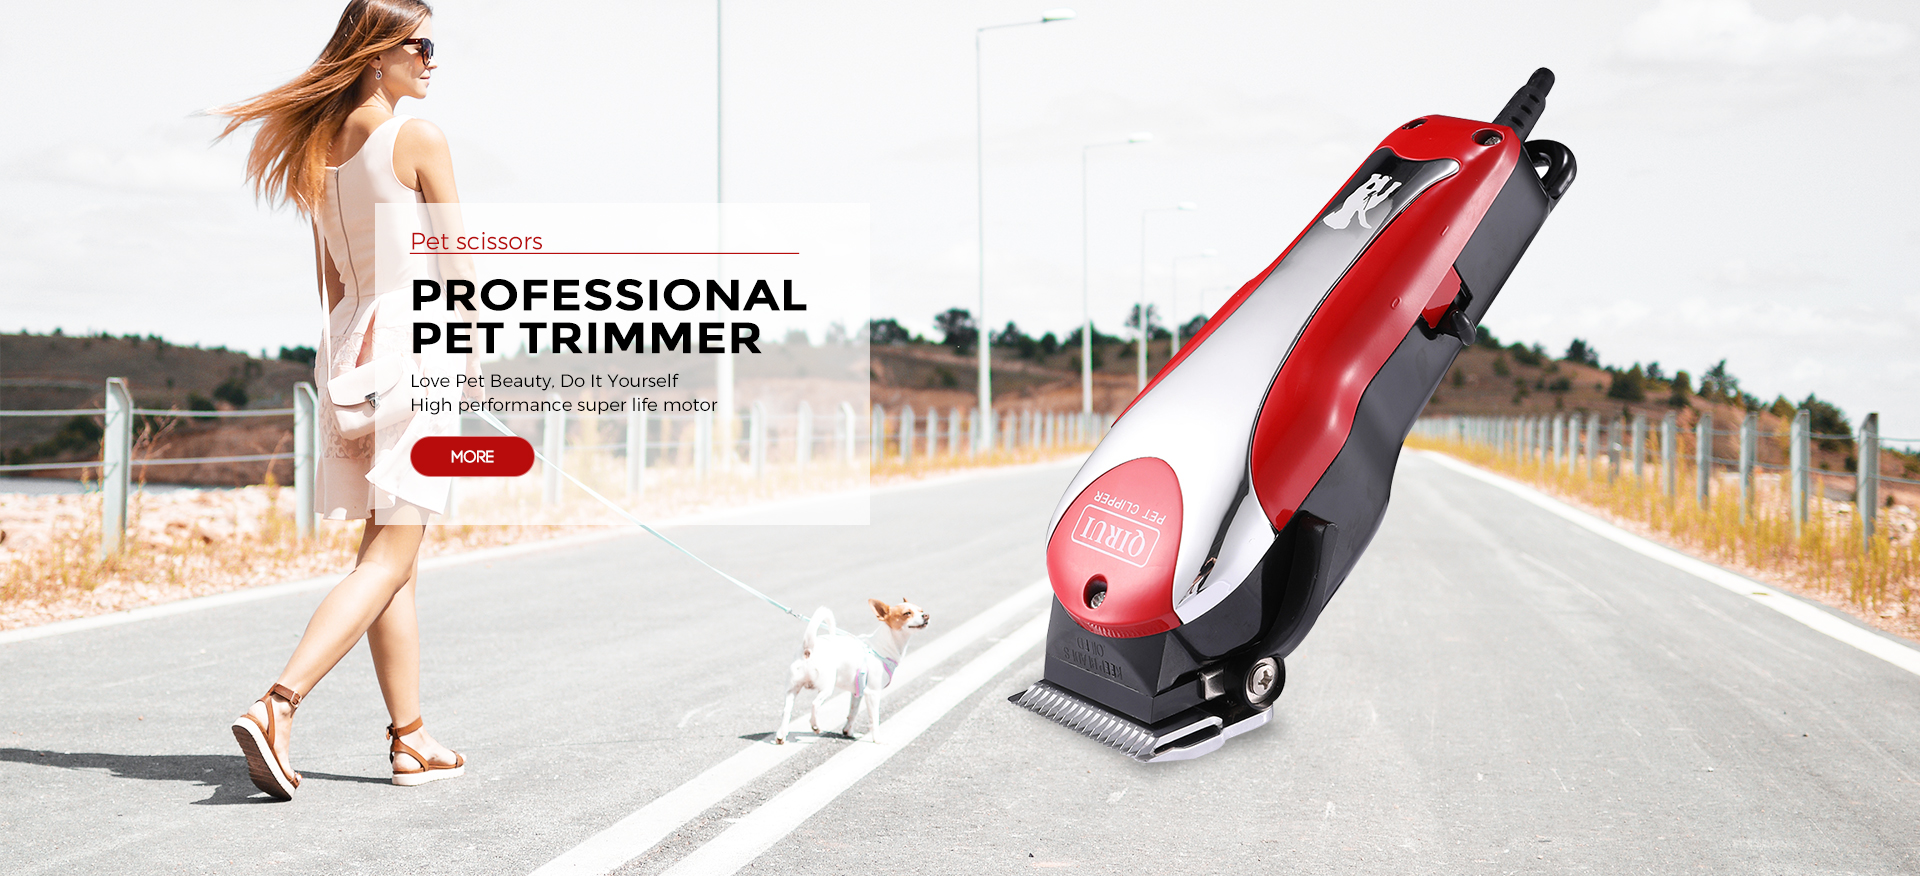 PROFESSIONAL PET TRIMMER